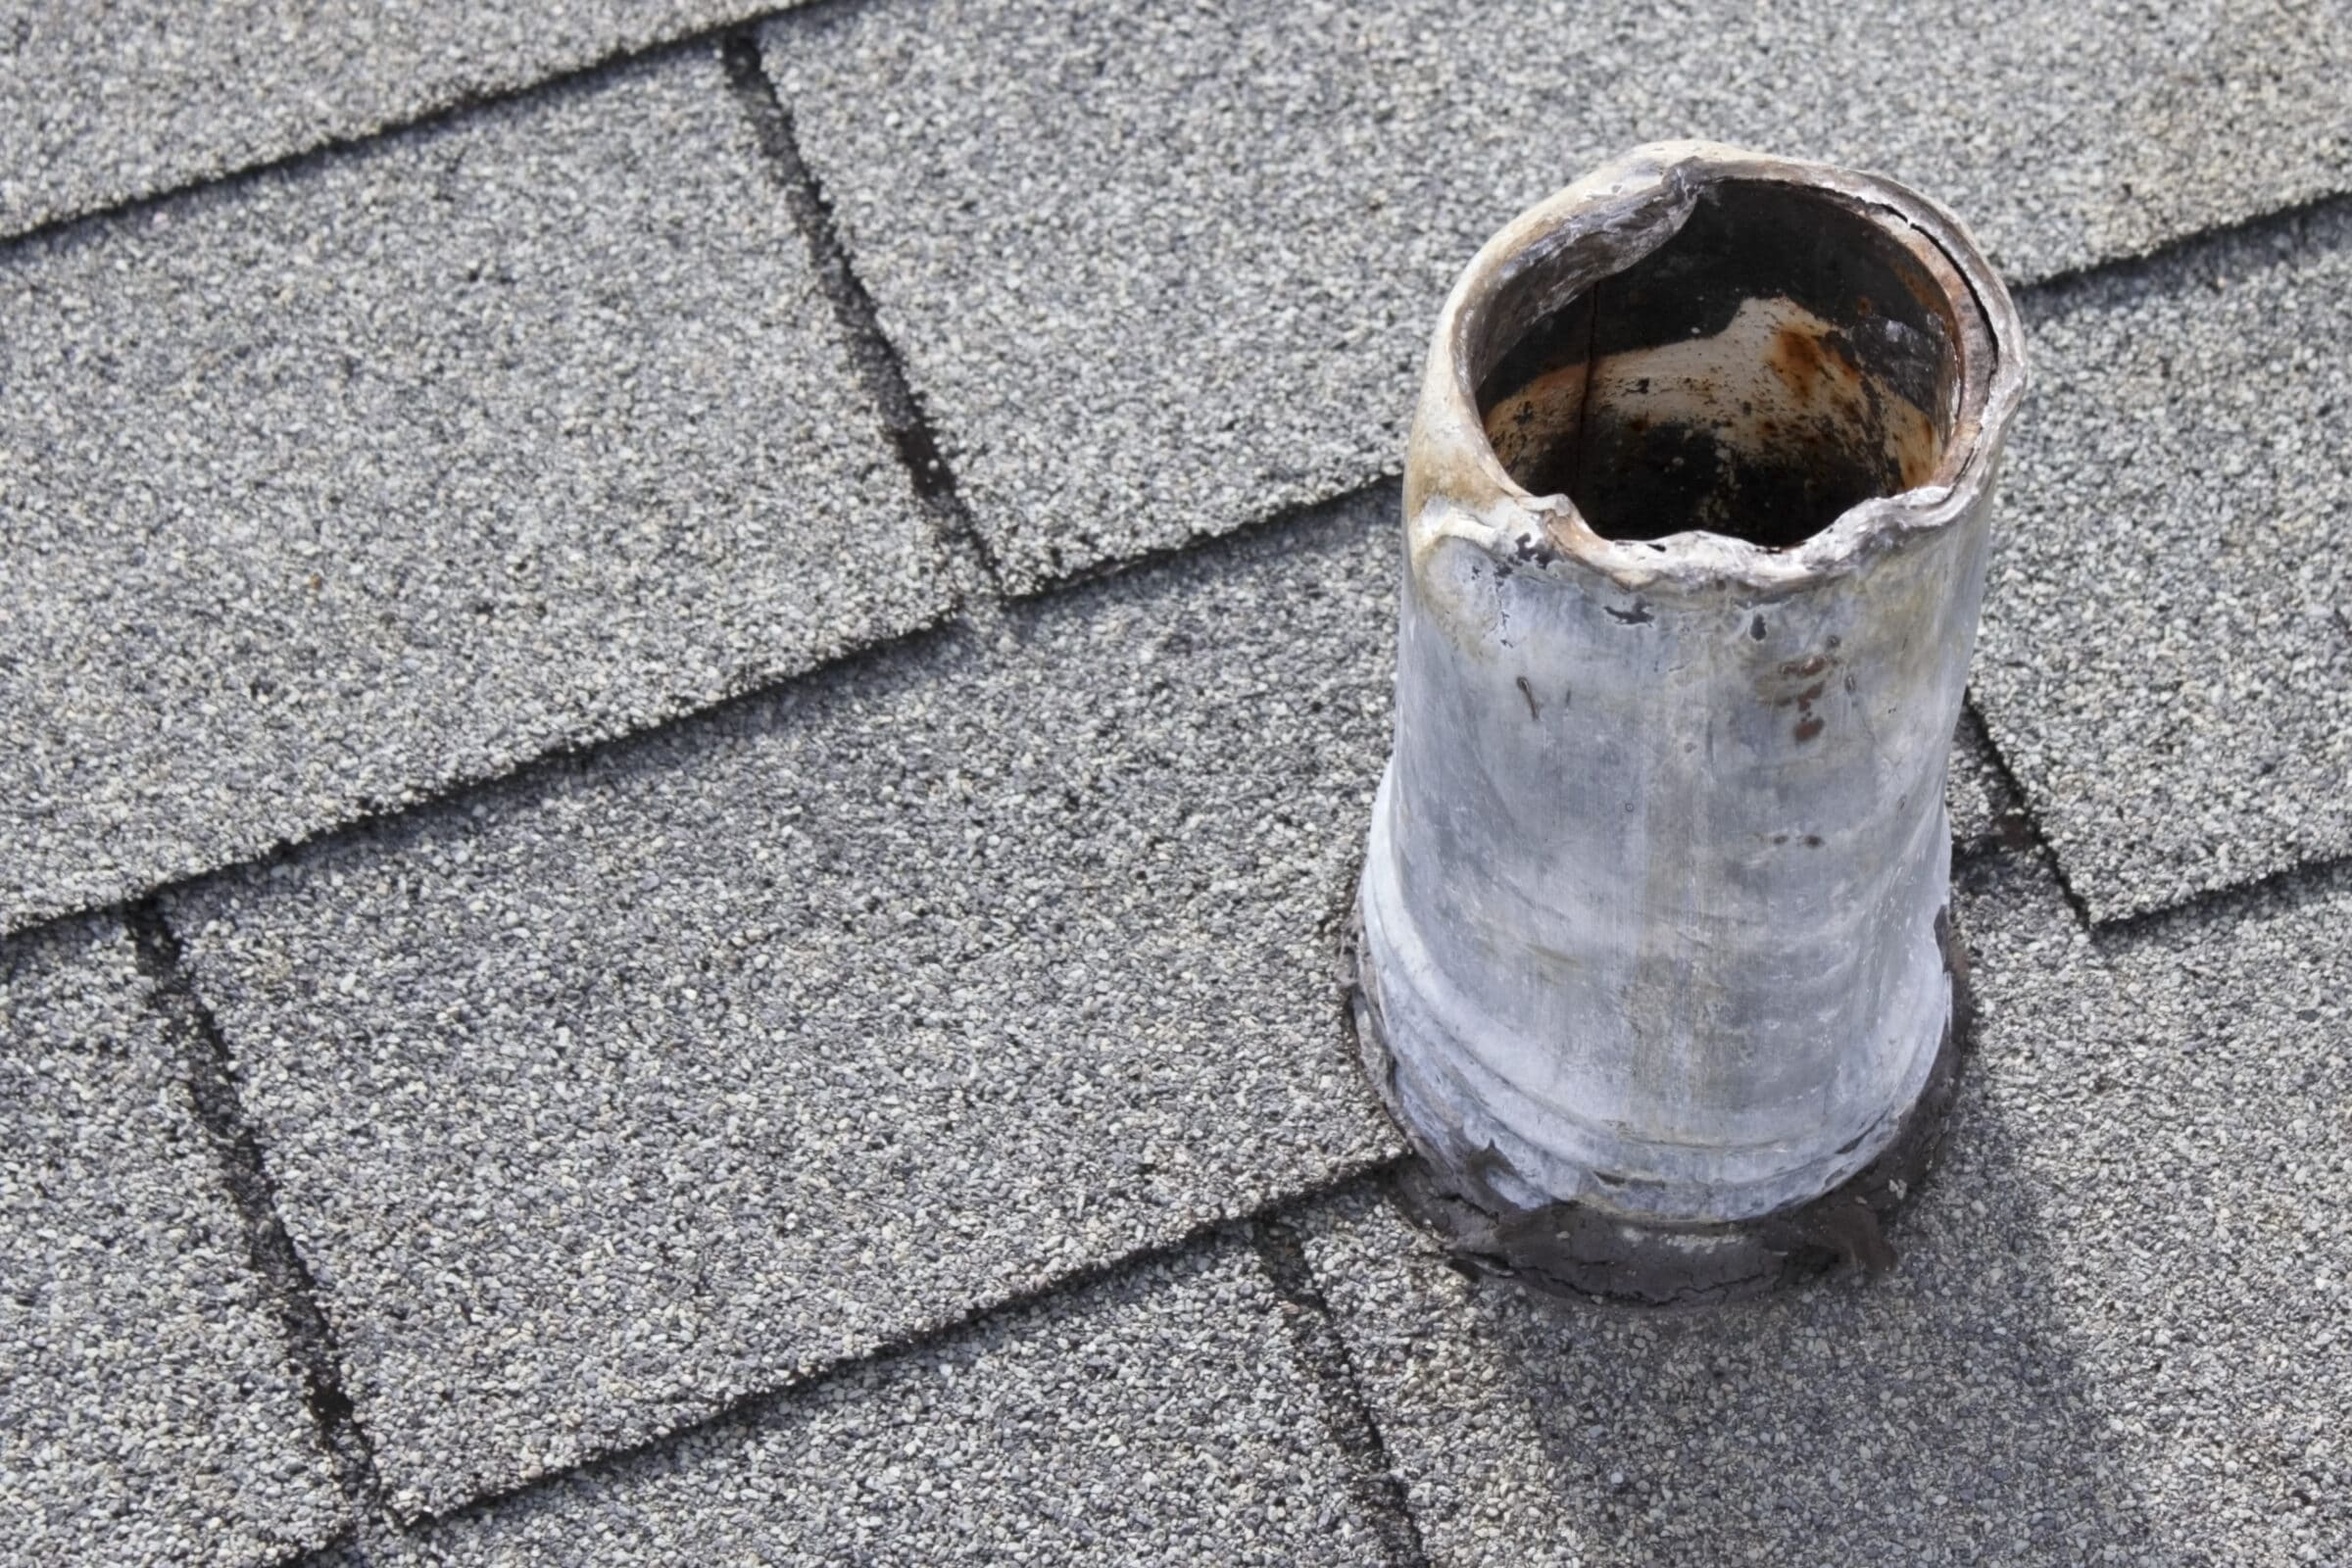 Residential short gray metal roof vent stack and black boot that shows sign of wear on top and bottom from snaking out the plumbing pipe in the past and that needs repair so there is no water damage.